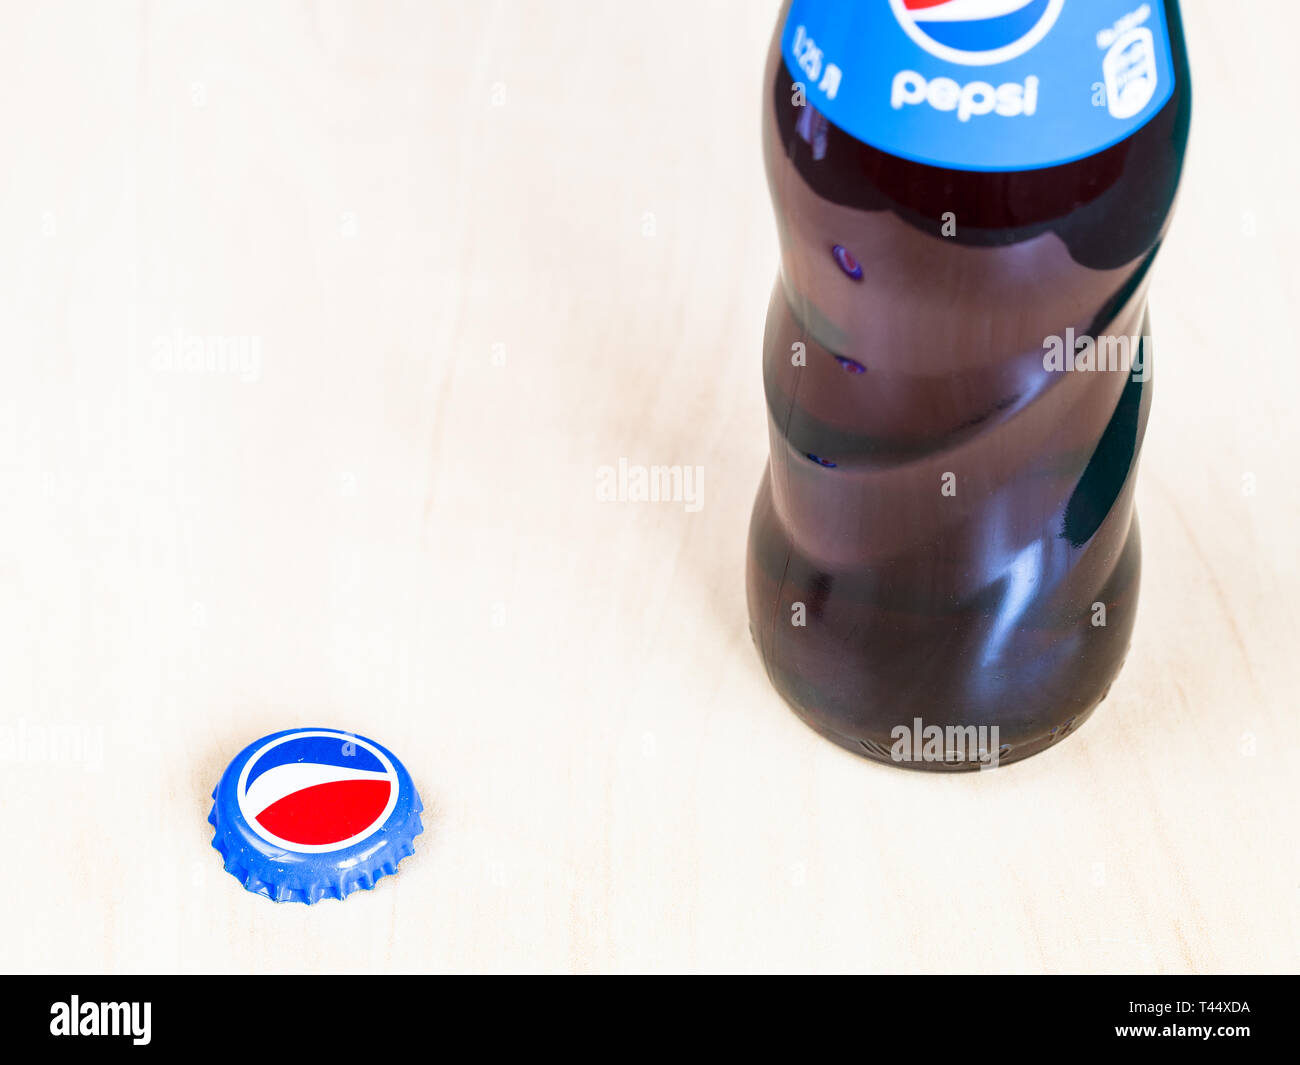 MOSCOW, RUSSIA - APRIL 4, 2019: glass bottle and used crown cork bottle cap from Pepsi beverage on wooden board. Pepsi is carbonated soft drink manufa - Stock Image